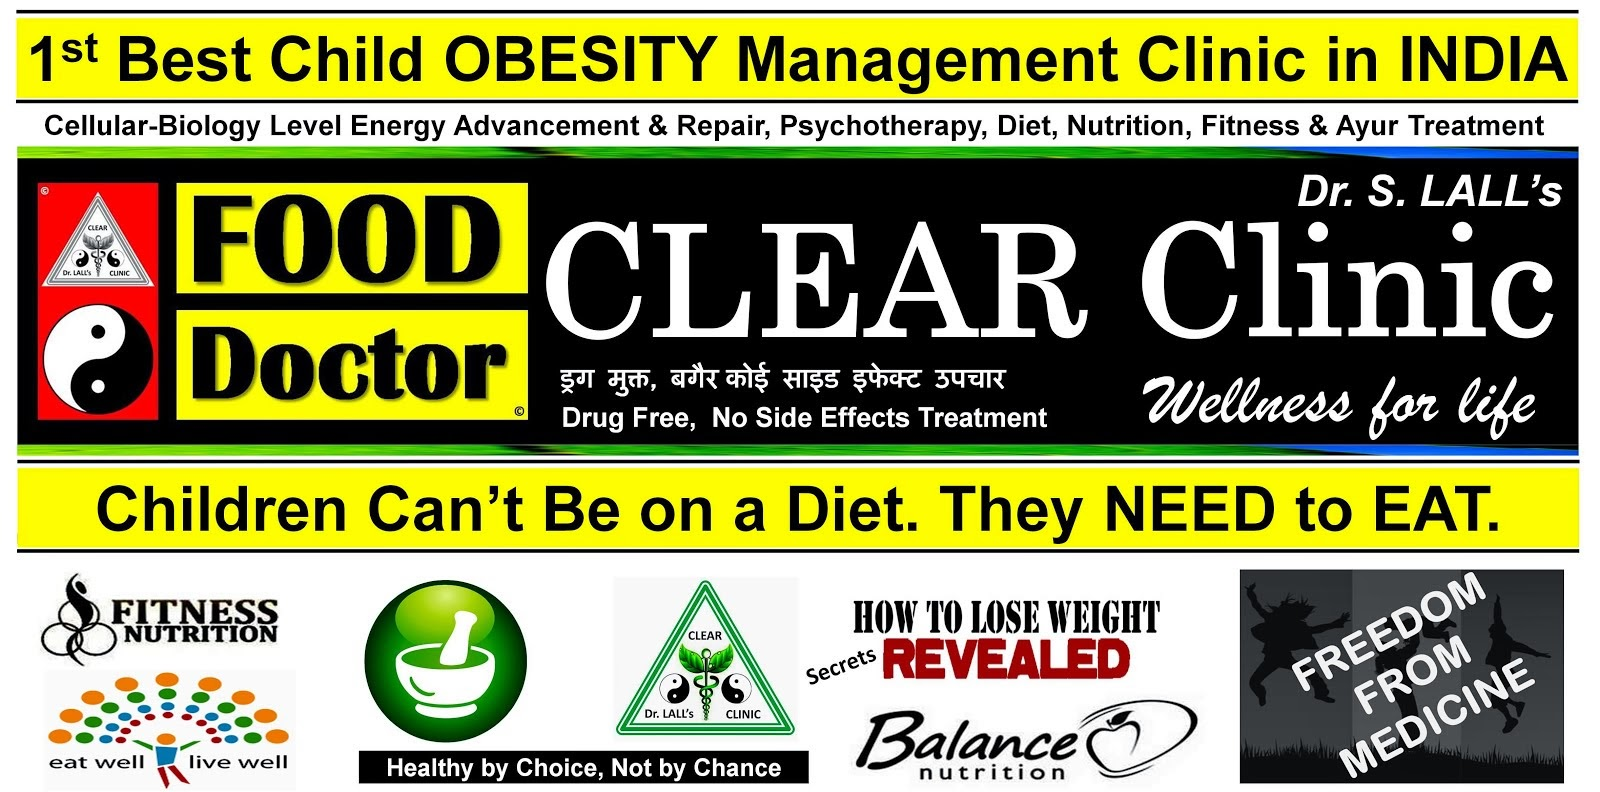 1st & BEST Child OBESITY Management Clinic in INDIA